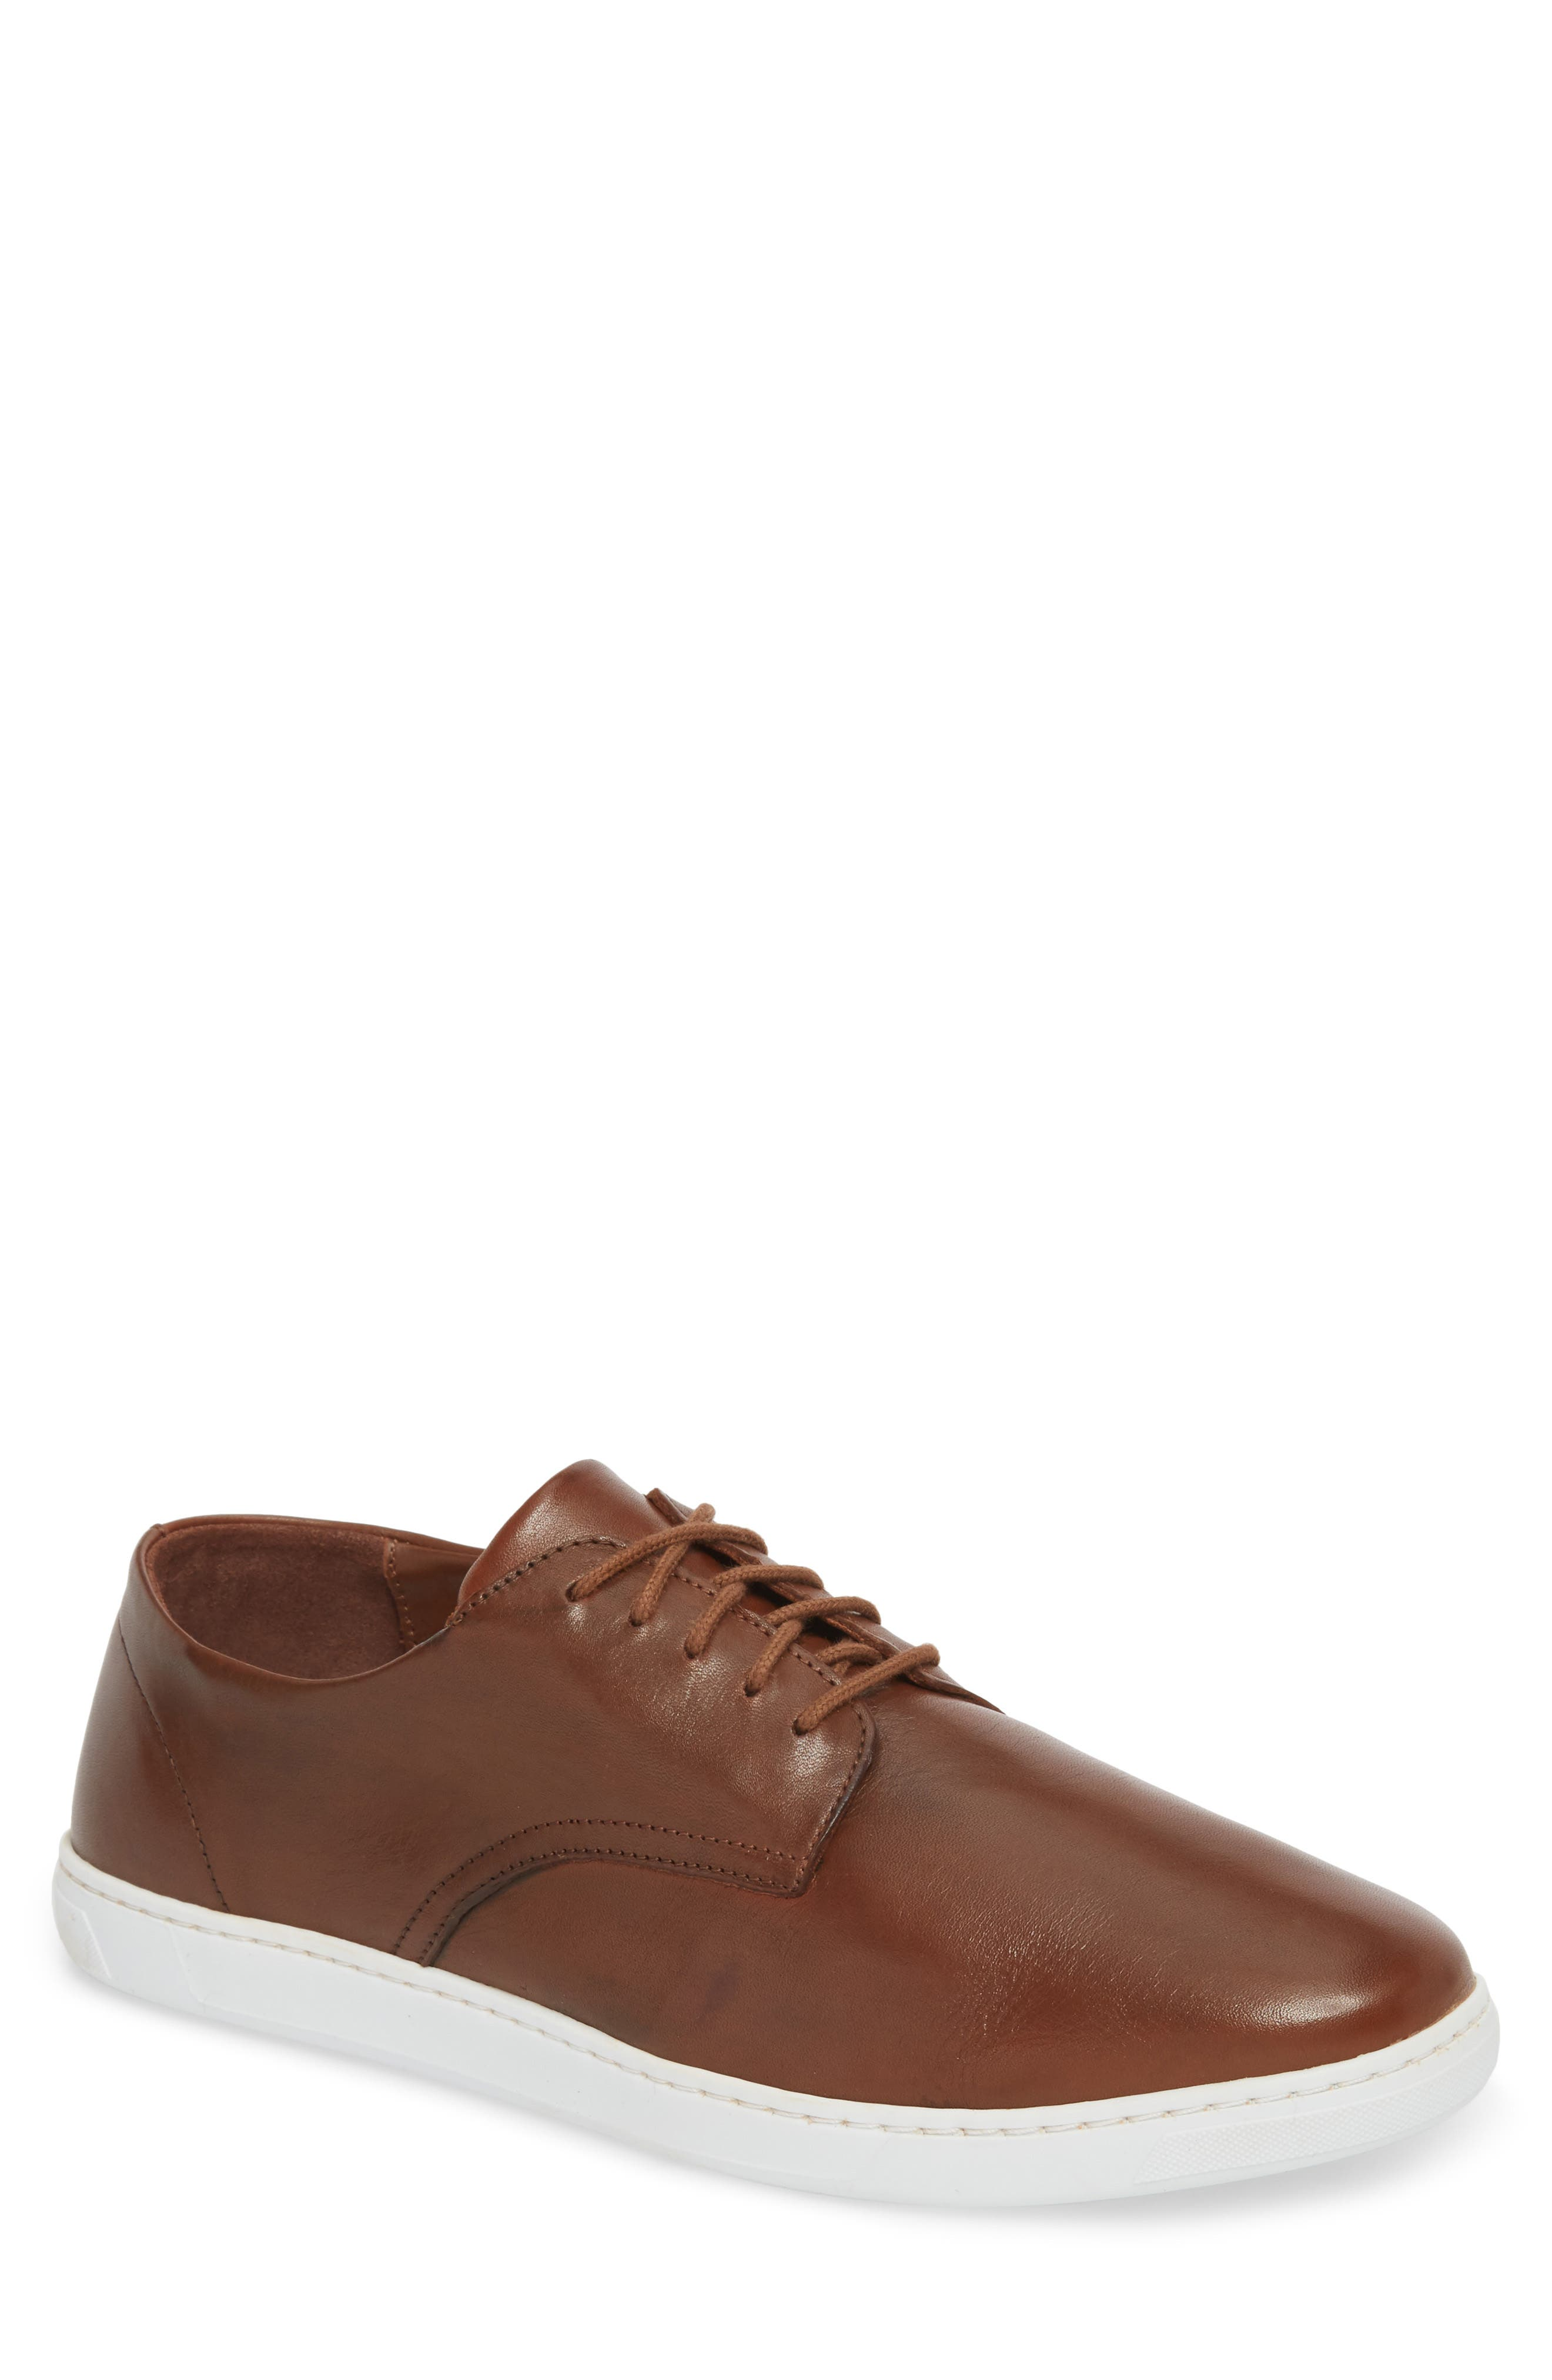 Nok Derby Sneaker,                             Main thumbnail 1, color,                             Brown Leather